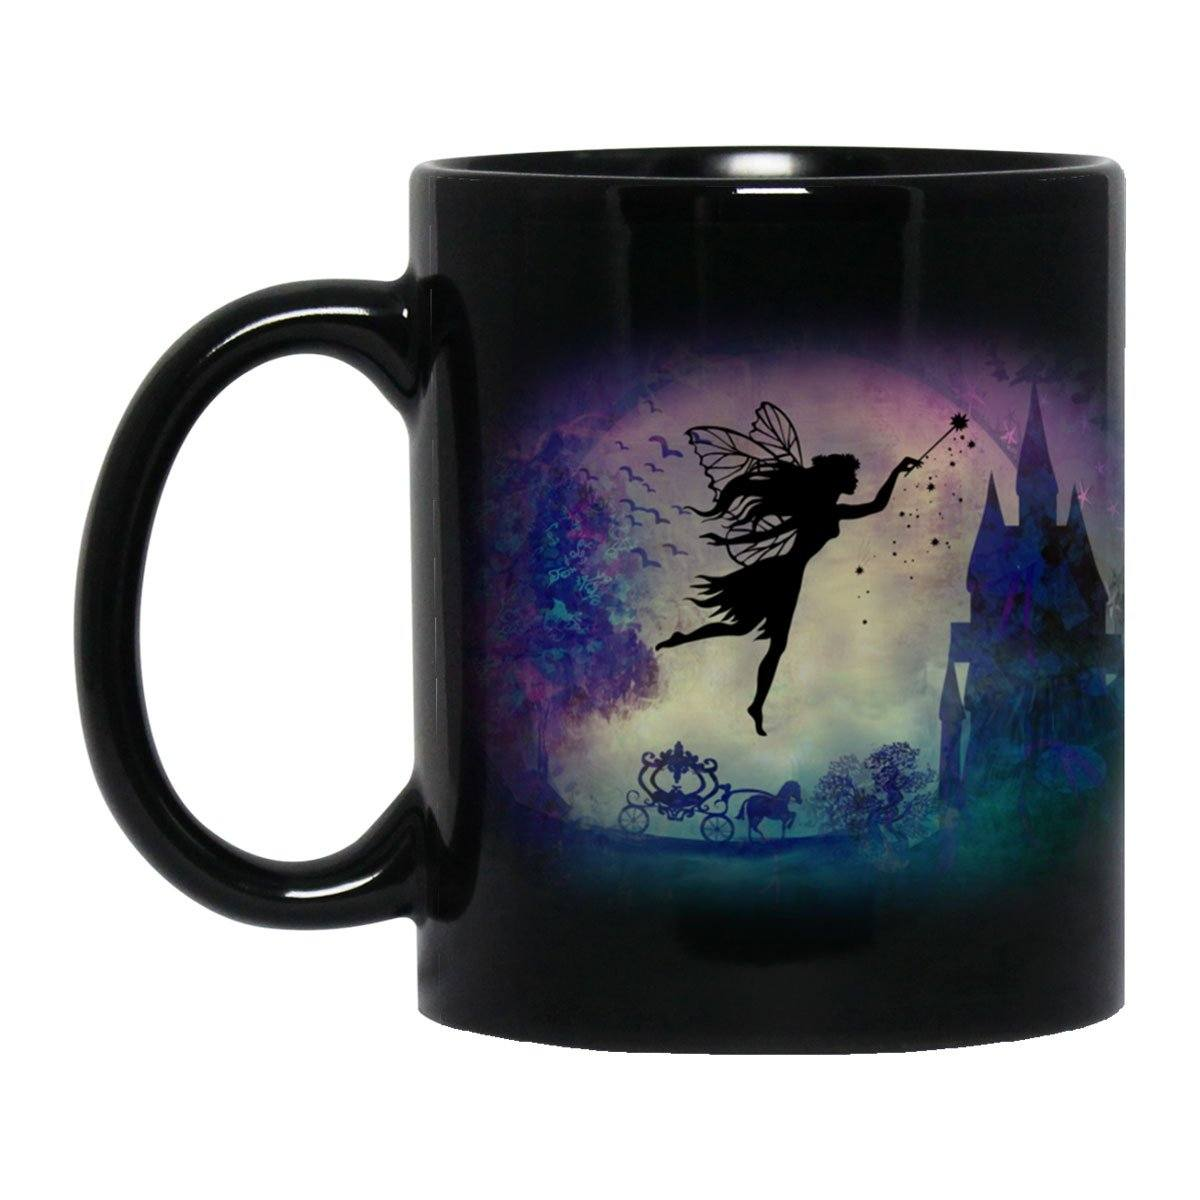 Fairytale Black Mug Drinkware Black One Size